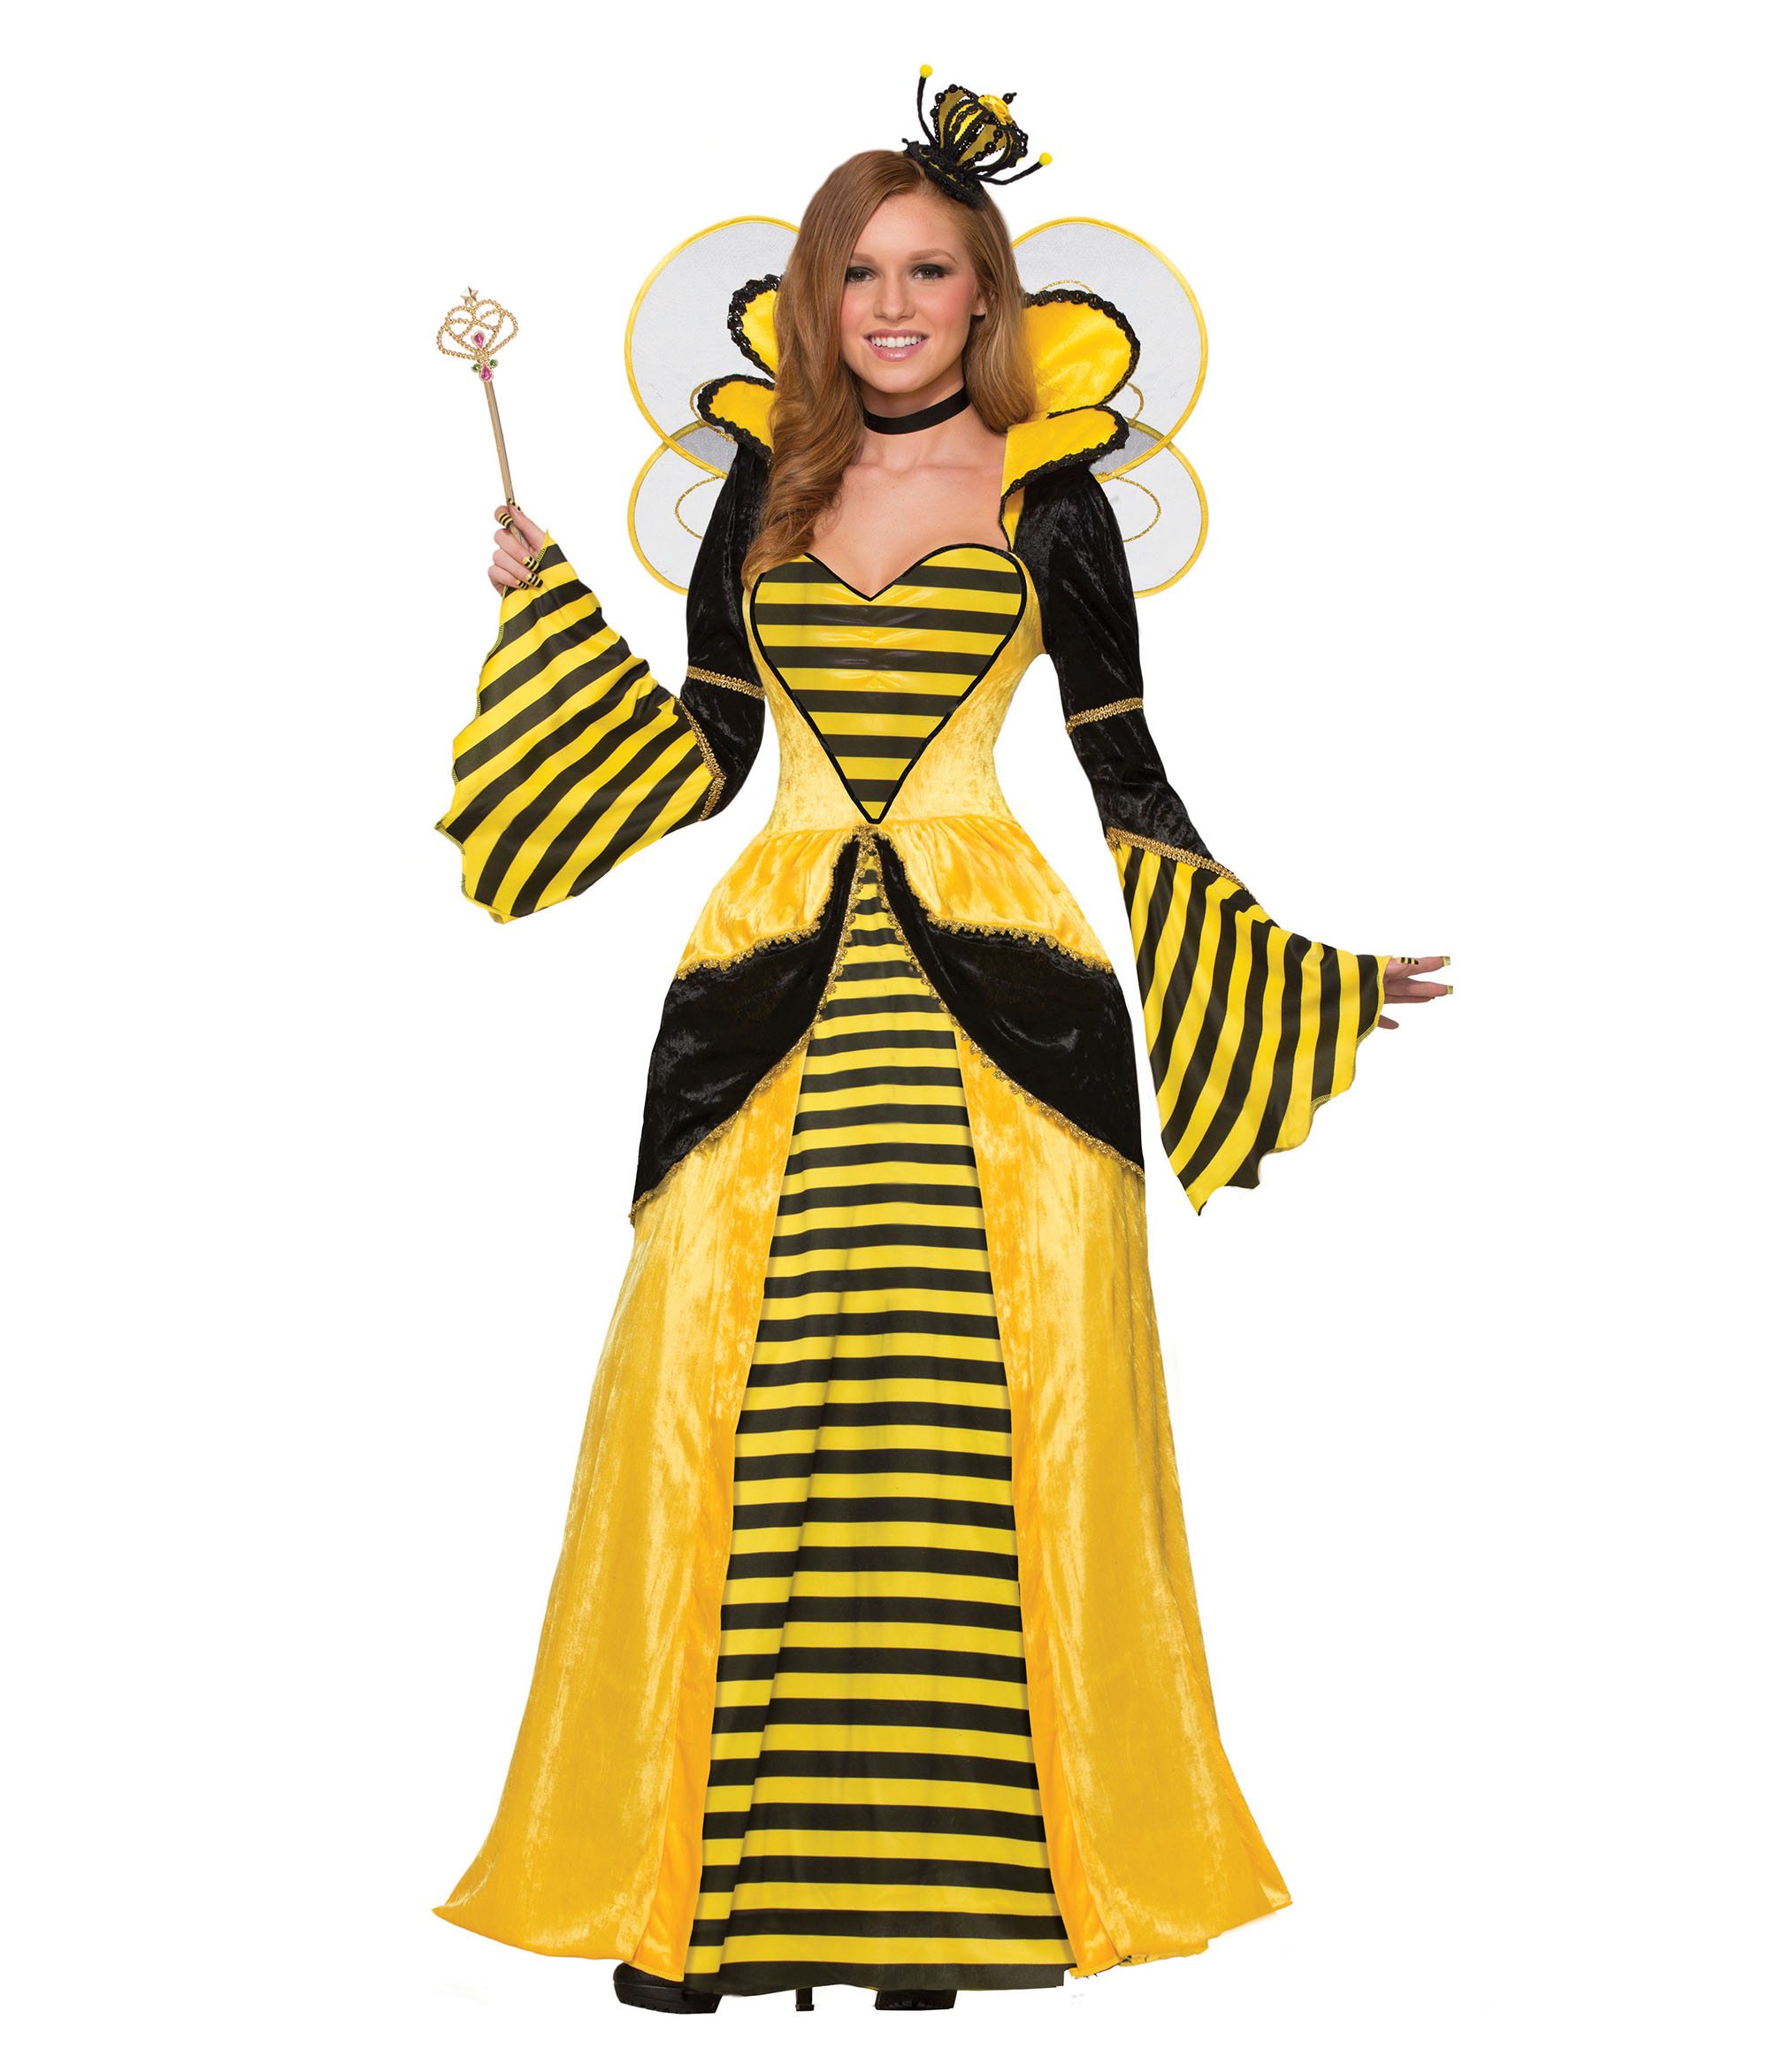 Queen Bee Costume Halloween Fancy Dress Costume Outfit Womens Adult UK 10-12